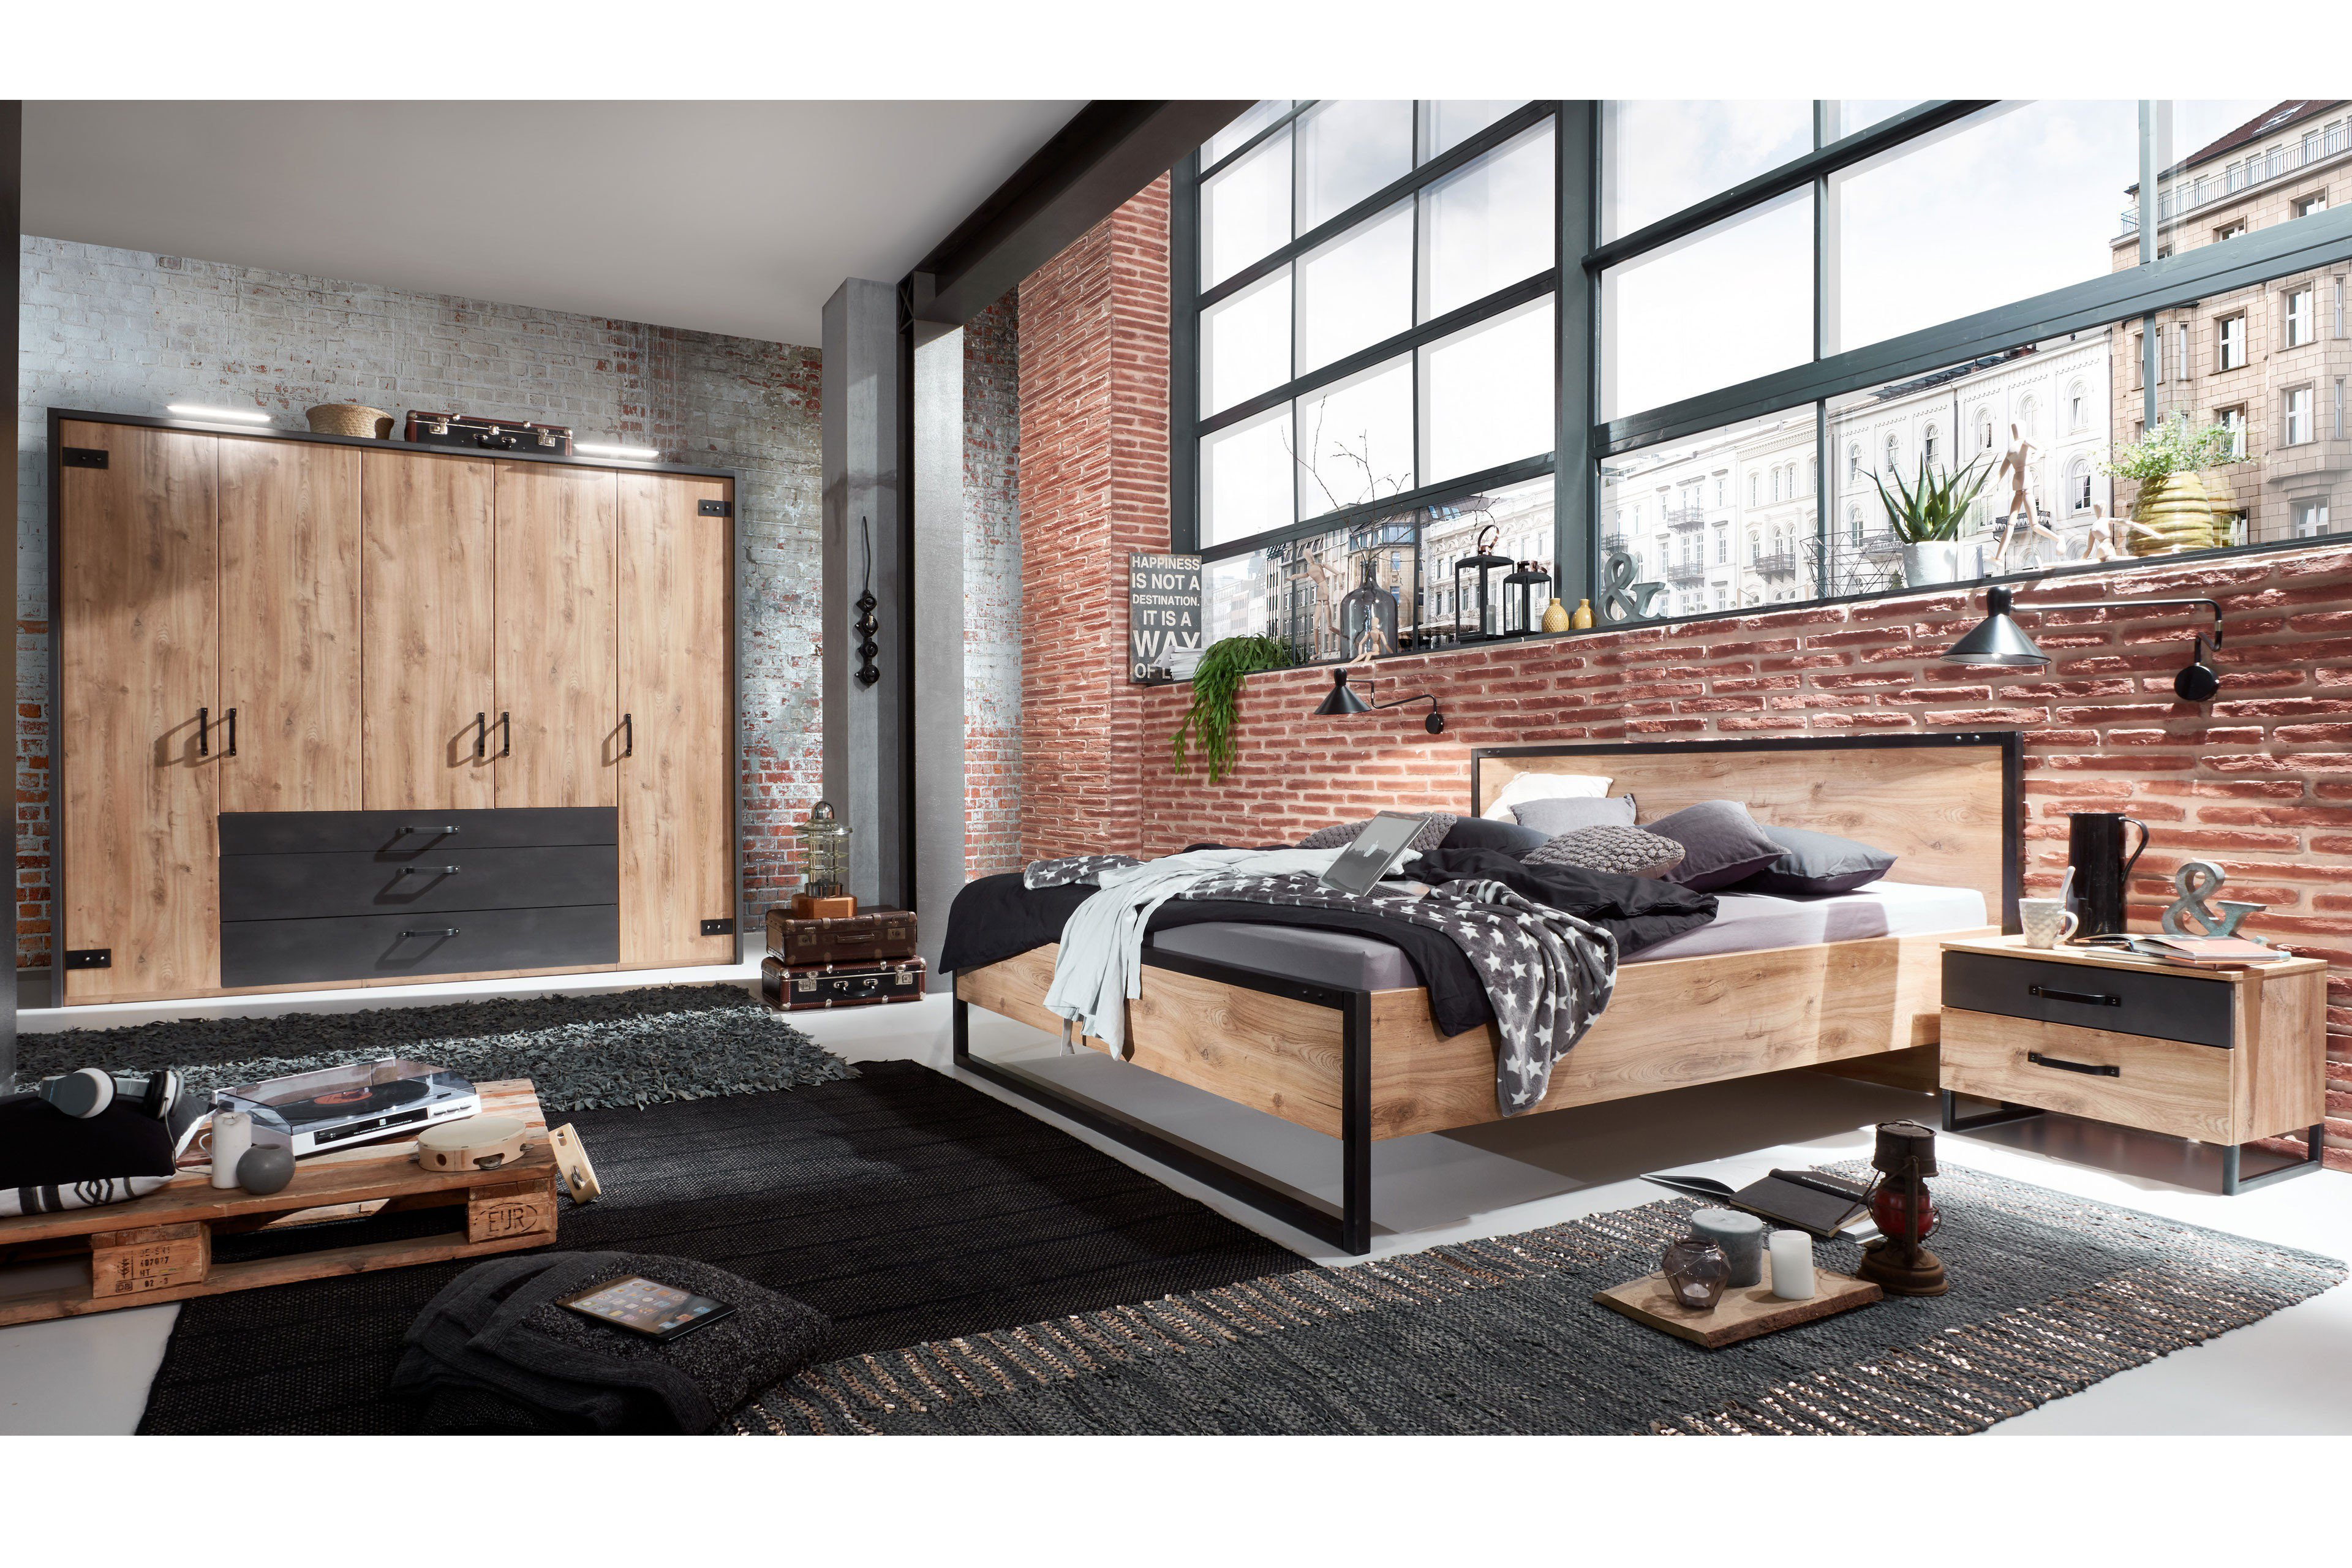 wimex detroit schlafzimmer im industrial style m bel letz ihr online shop. Black Bedroom Furniture Sets. Home Design Ideas